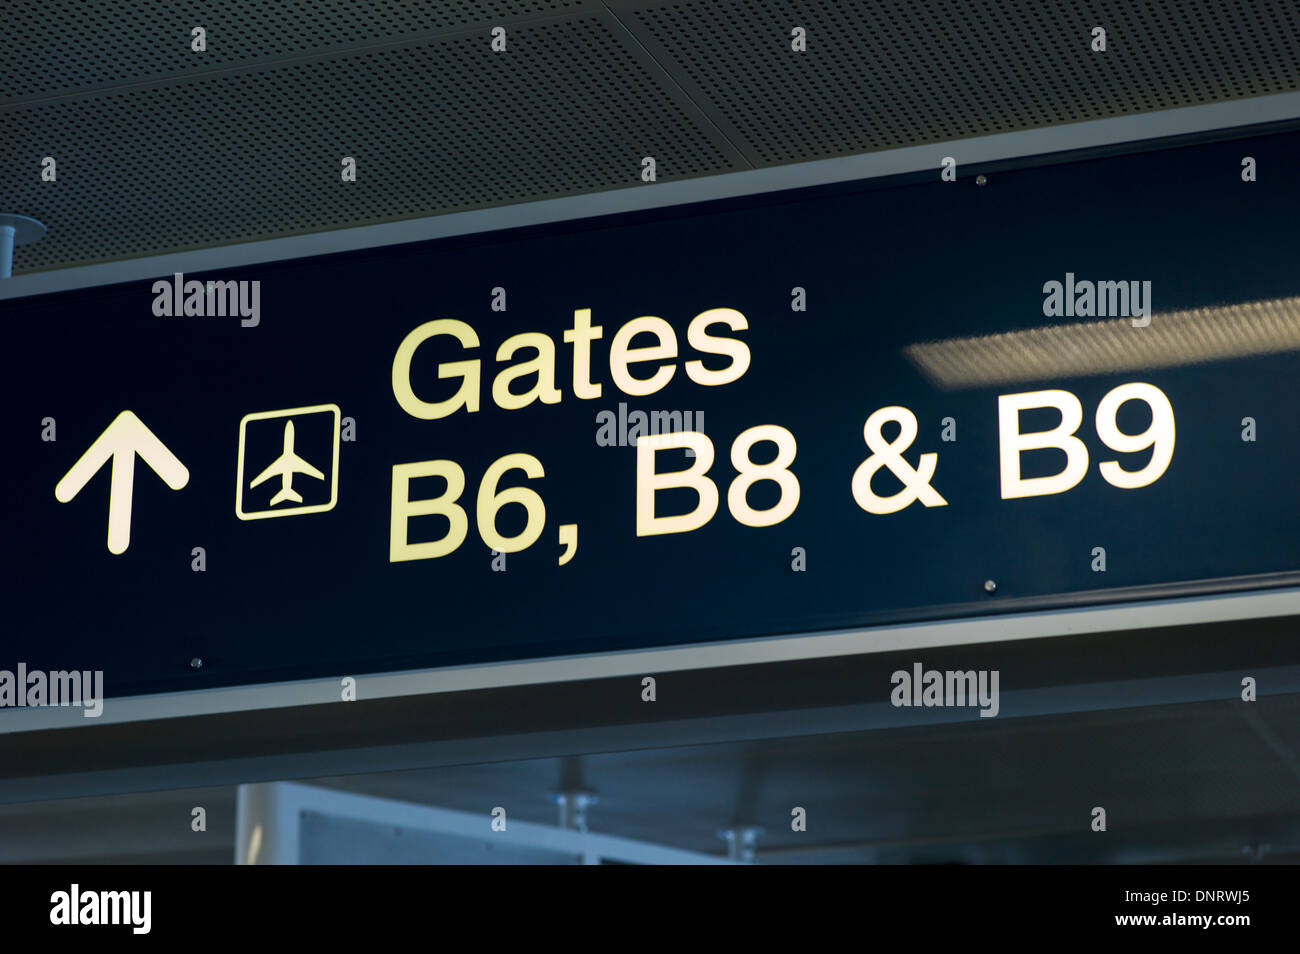 Signage at the Ft. Lauderdale - Hollywood International Airport, Ft. Lauderdale, Florida, USA - Stock Image